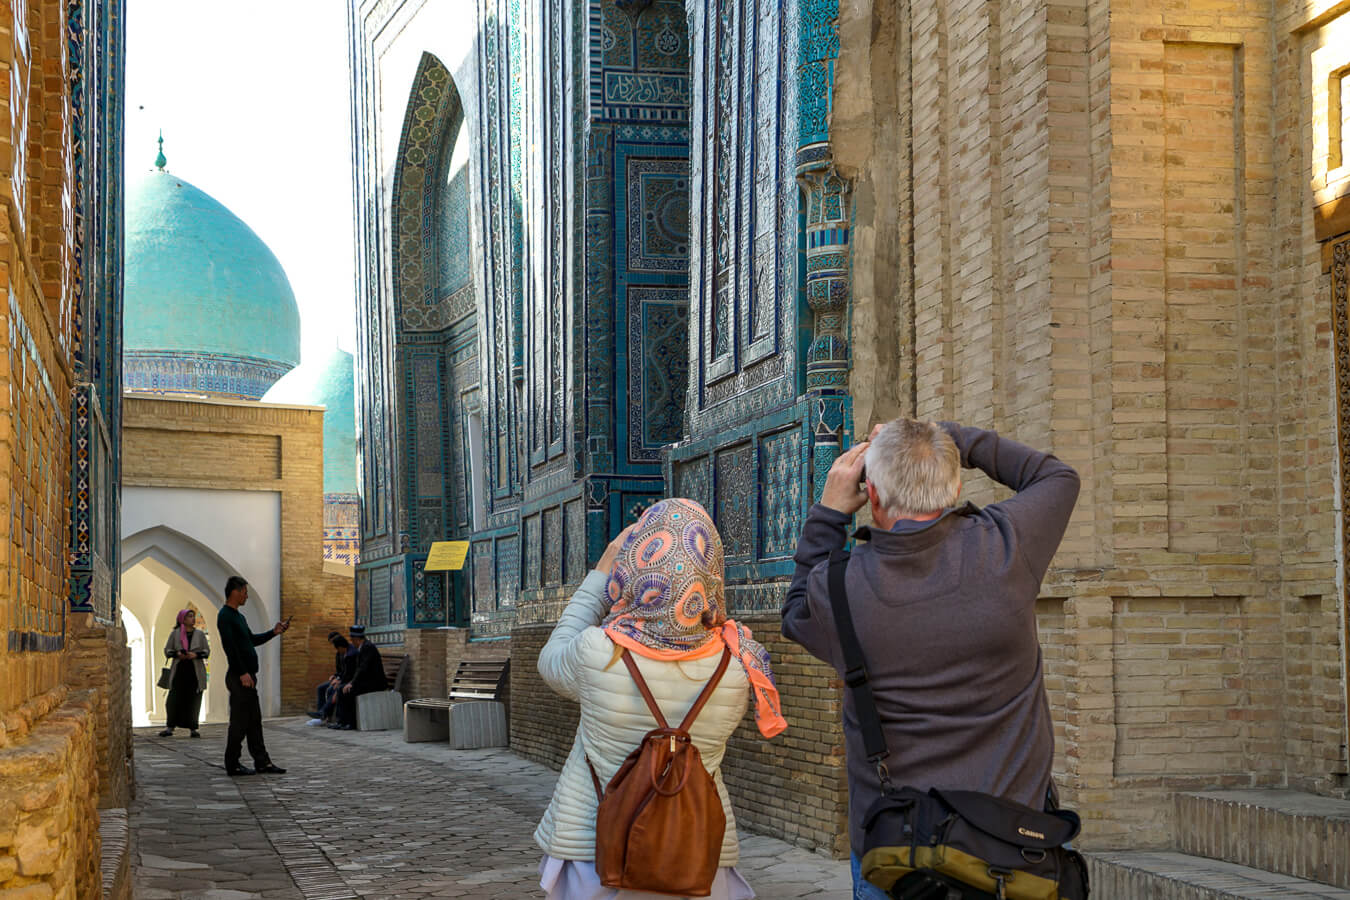 Shahizinda mausoleum photographed by tourists in Samarkand